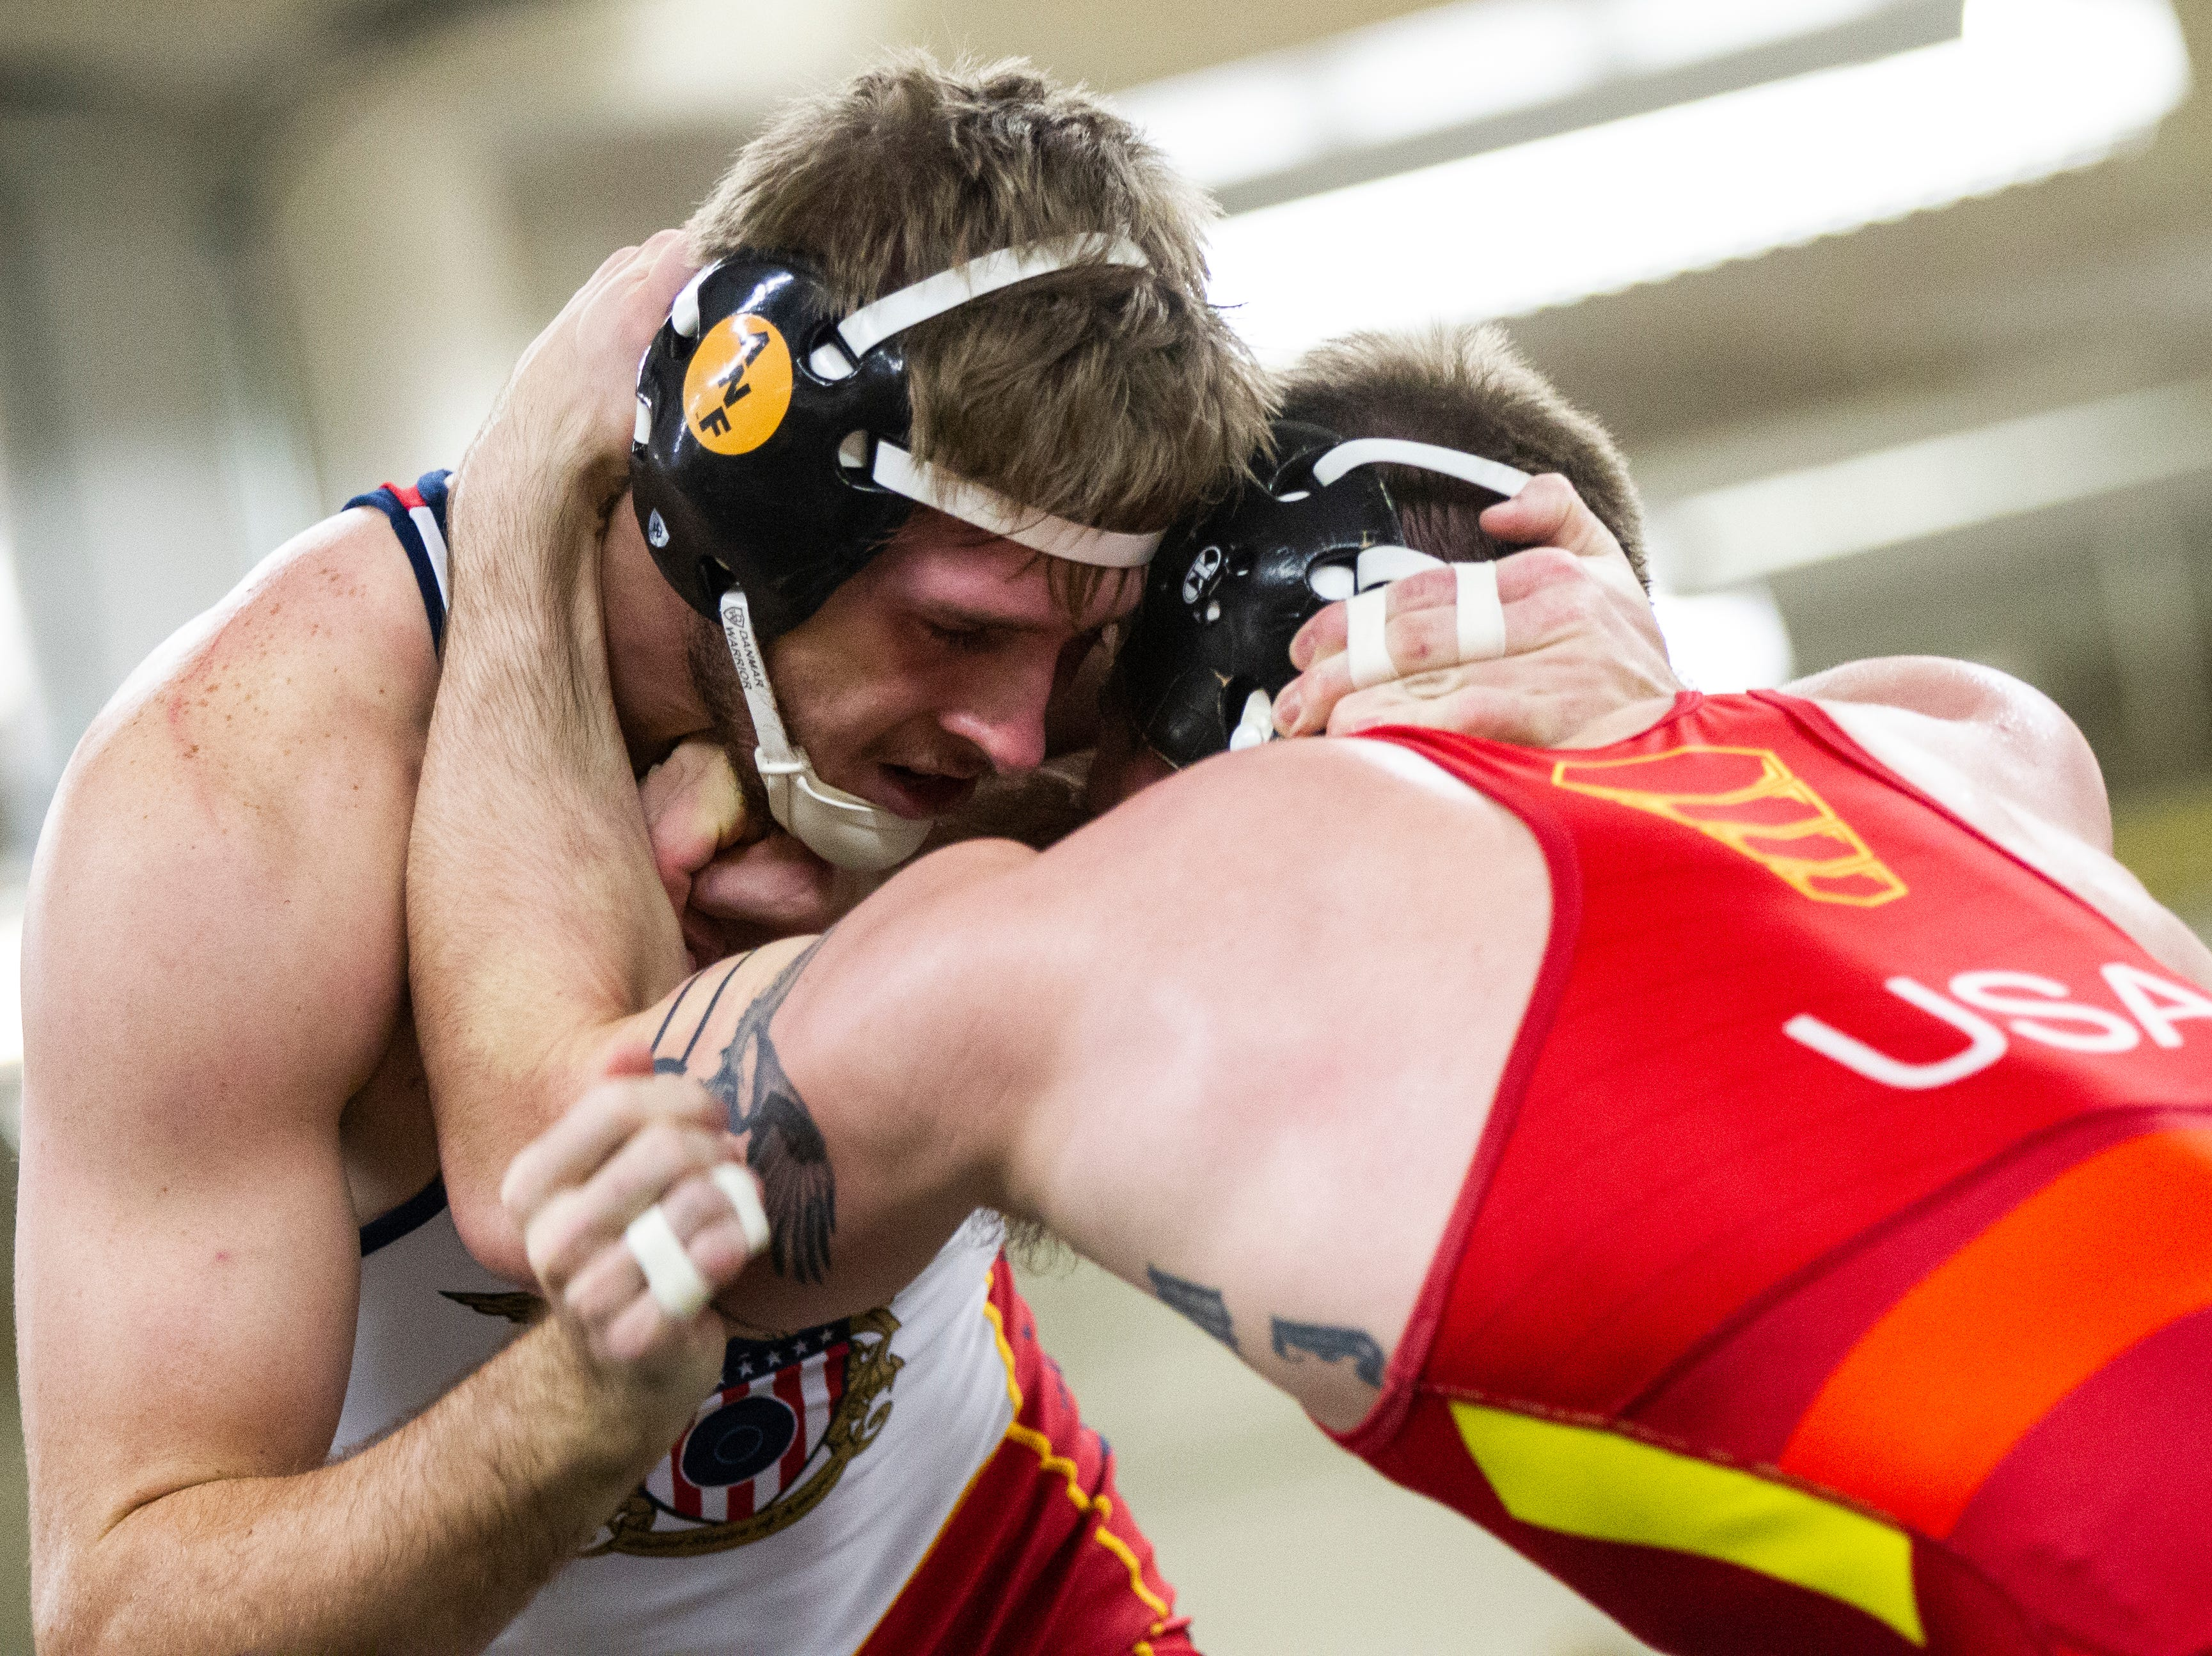 Iowa's Mitch Bowman (left) wrestles Cash Wilcke at 184 during the wrestle-offs on Friday, Nov. 2, 2018, inside the Dan Gable Wrestling Complex at Carver-Hawkeye Arena in Iowa City.